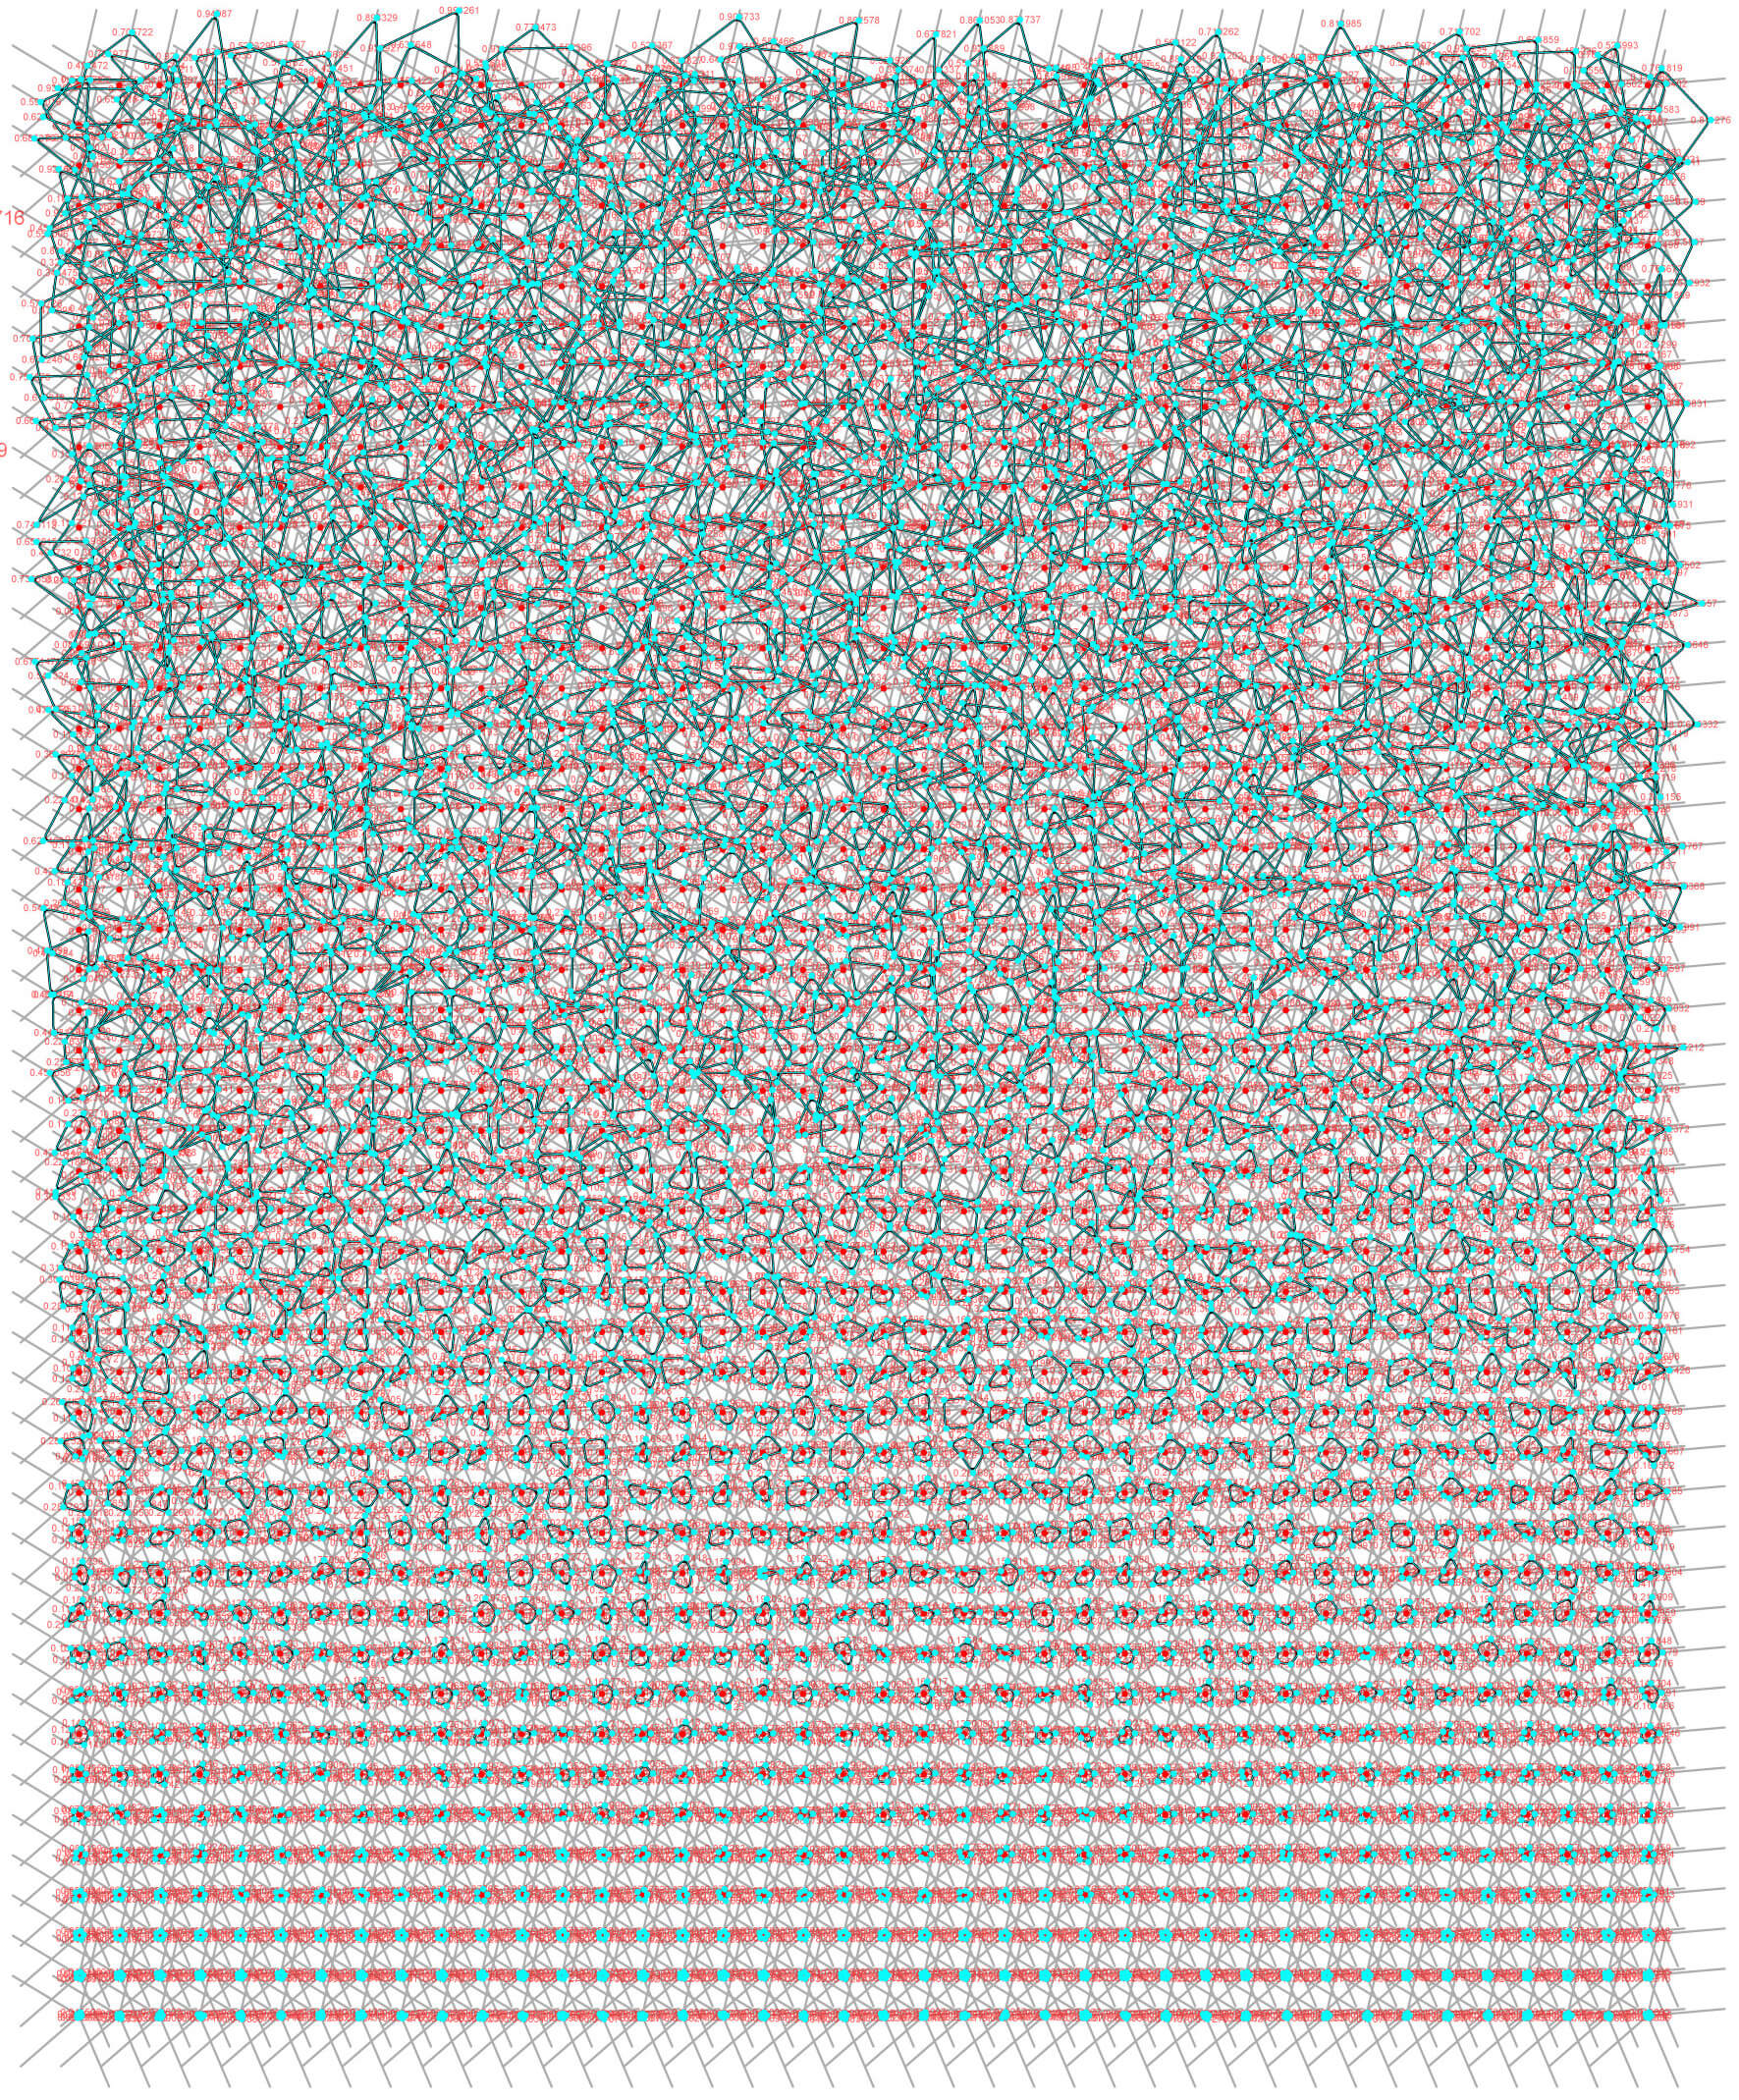 Algorithmic Fritting Art